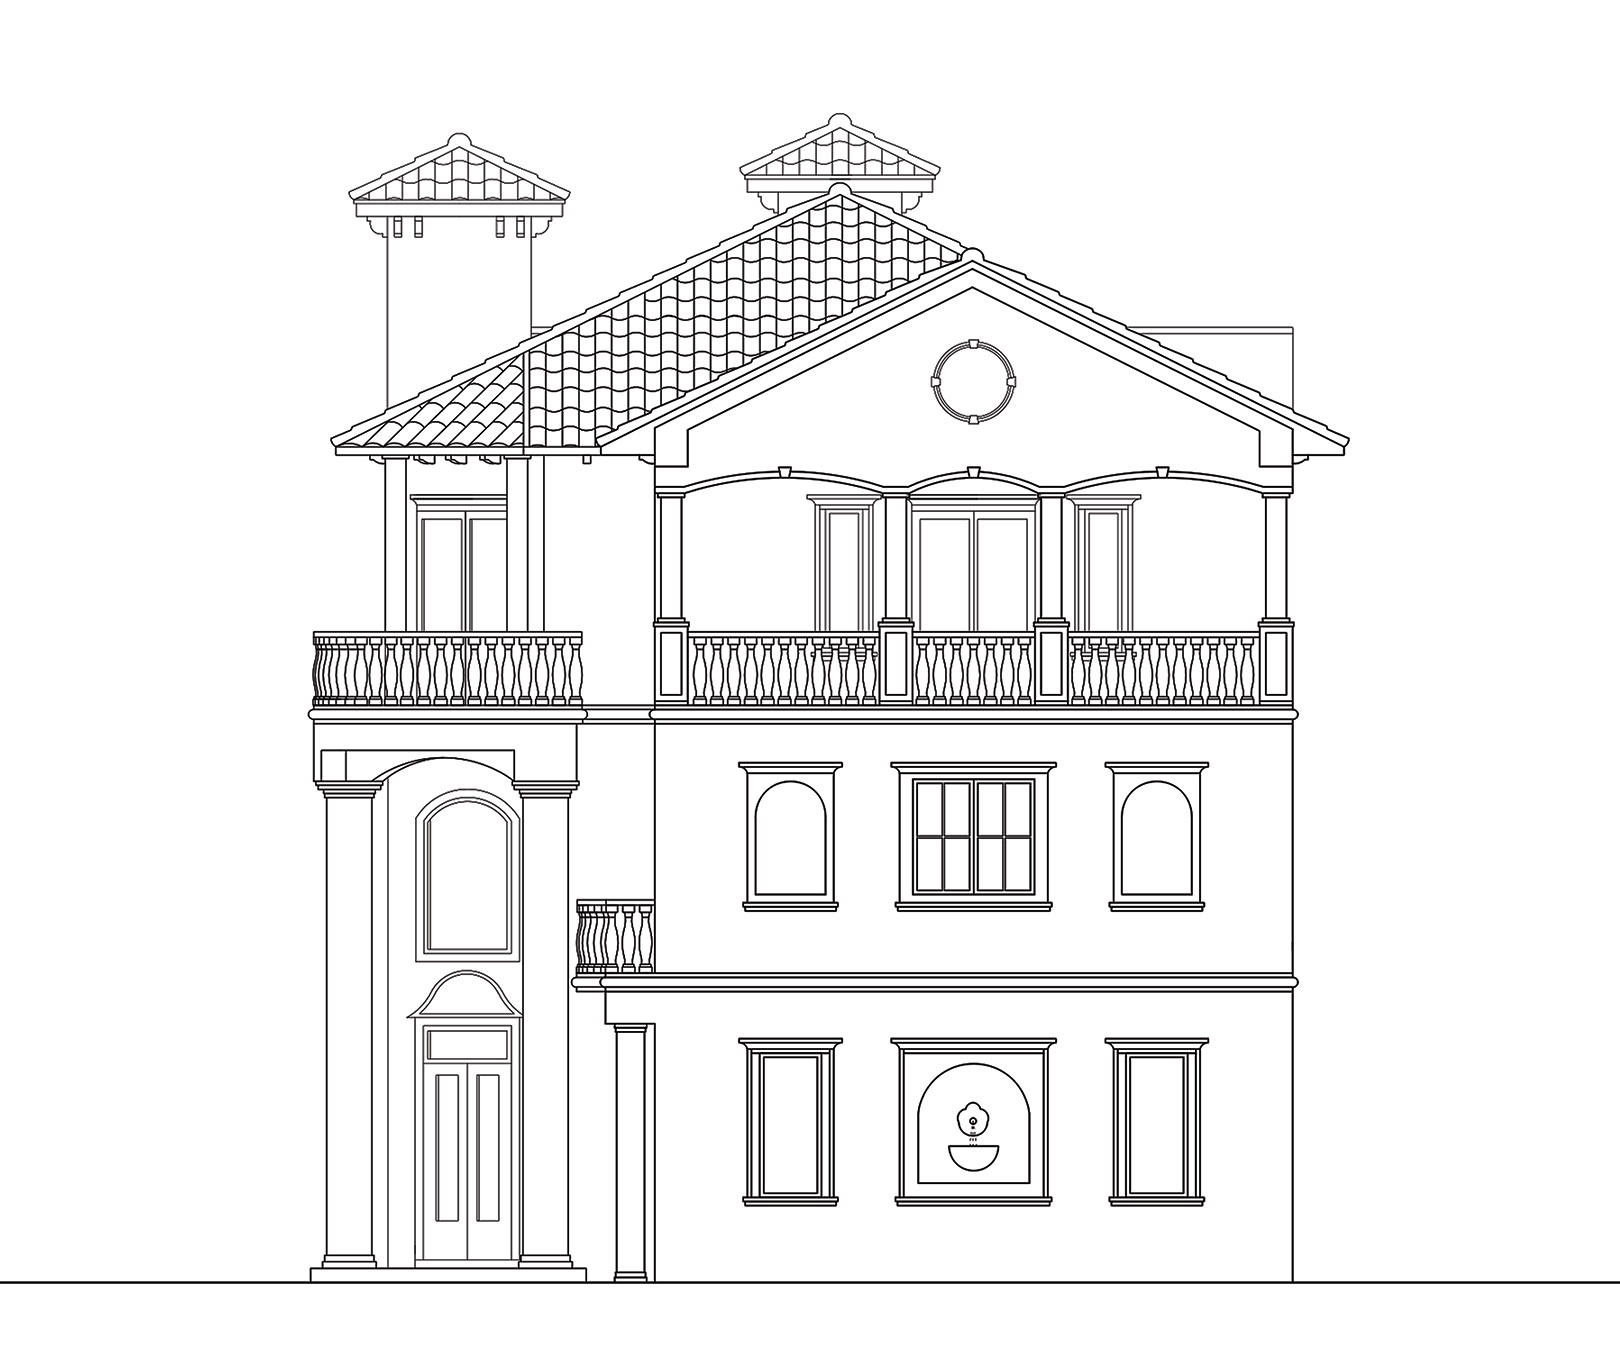 Front Elevation In 2d : D elevation and floor plan best free home design